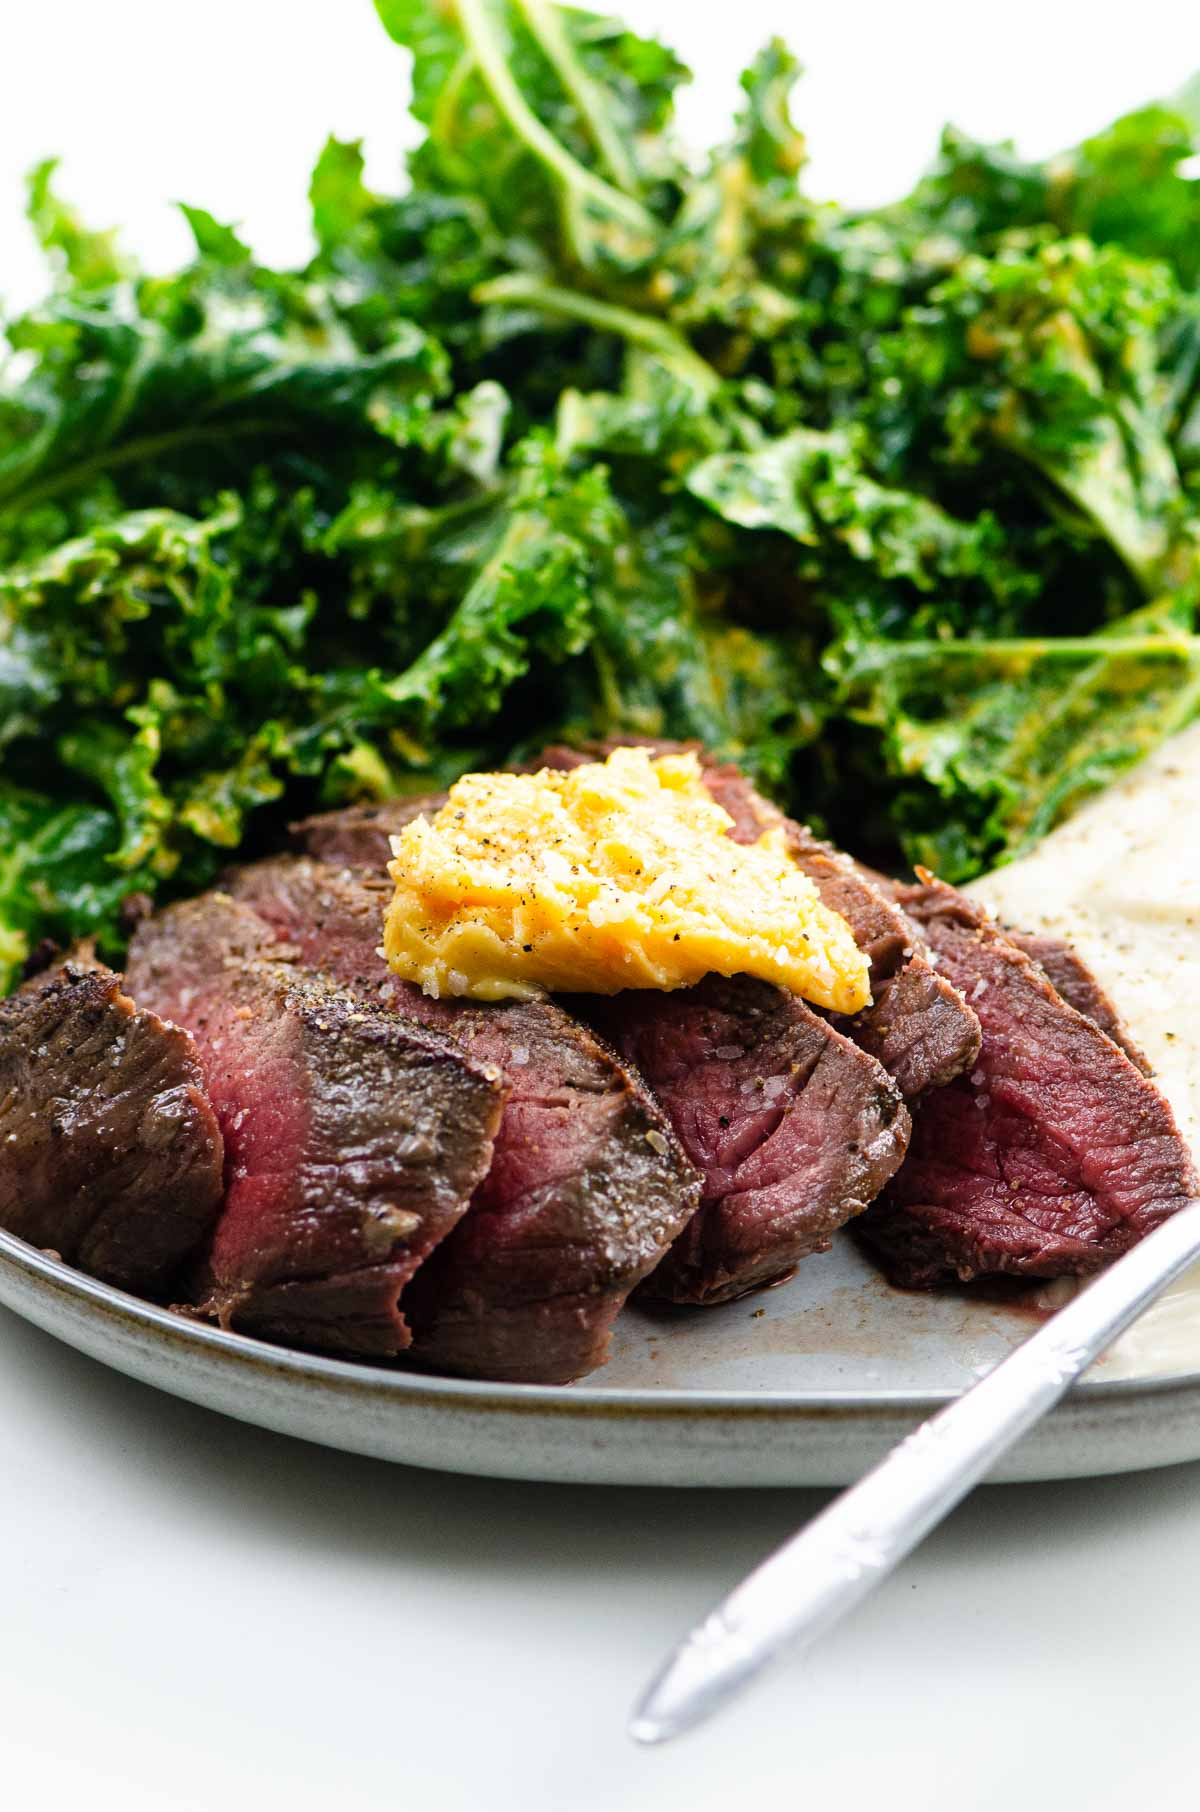 Top Sirloin Steak with Miso Butter, mashed cauliflower, and kale salad